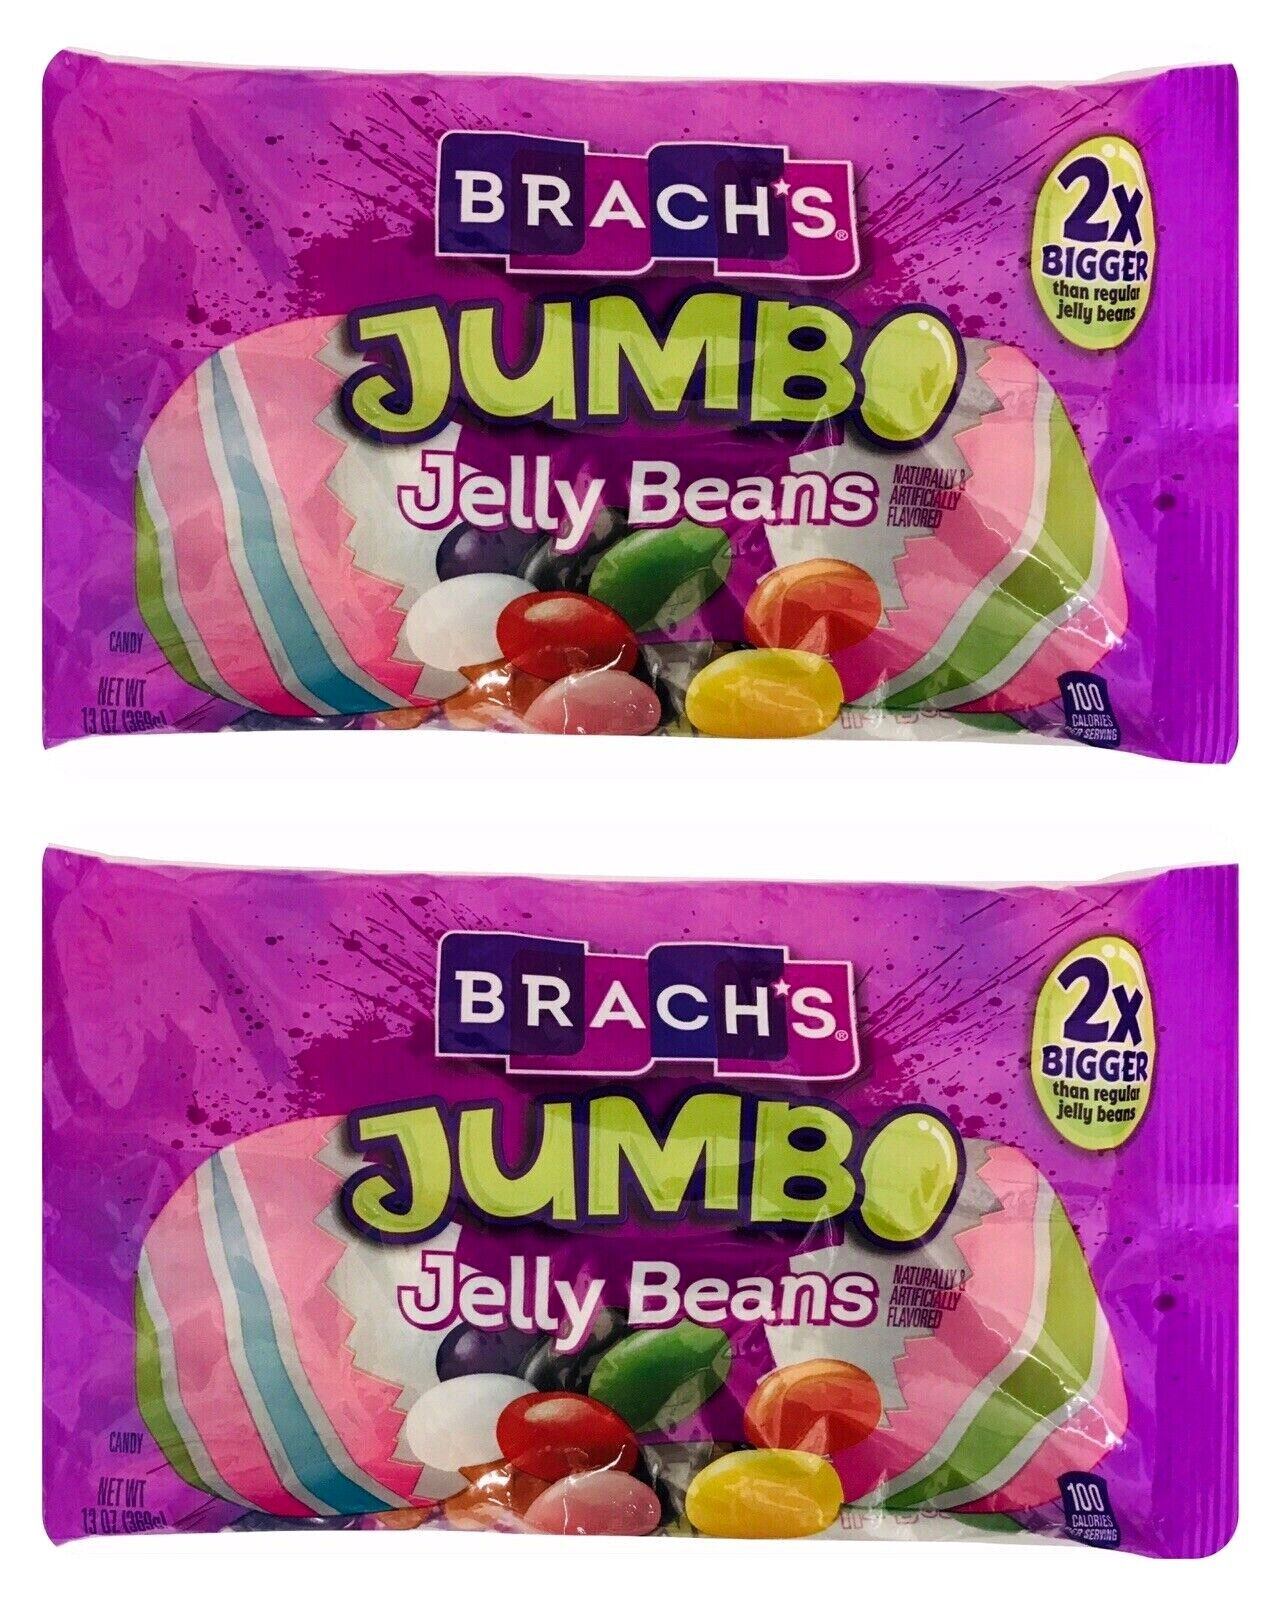 2x brachs jumbo 2x bigger than reg